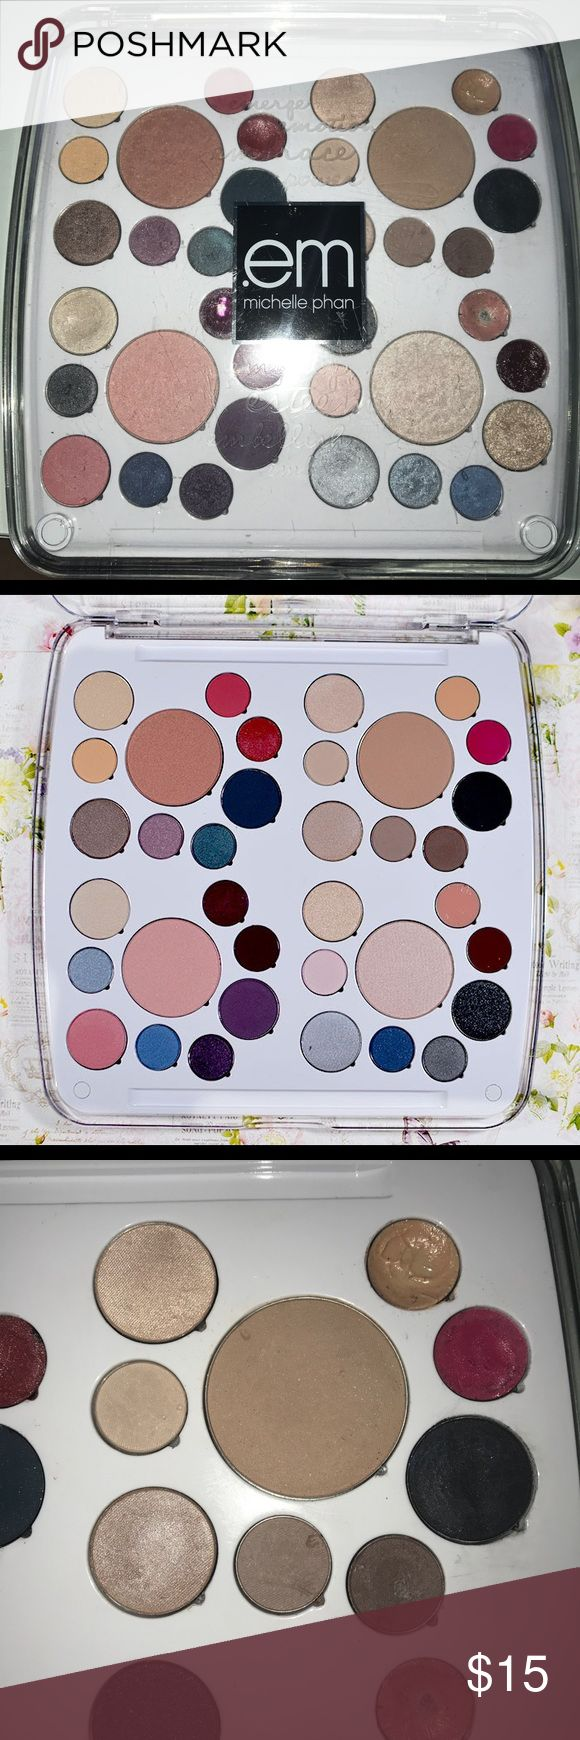 Em by Michelle Pham Love Life Pallette This palette has it all!!! 8 lip colors, 3 blushes, 1 bronzer, and 24 eye pigments! As you can see, there is some wear to the pigments and some are pretty used. However, in its entirety, most haven't gone much further than swatching and the quality of the makeup is exceptional Em Michelle Phan Makeup Eyeshadow